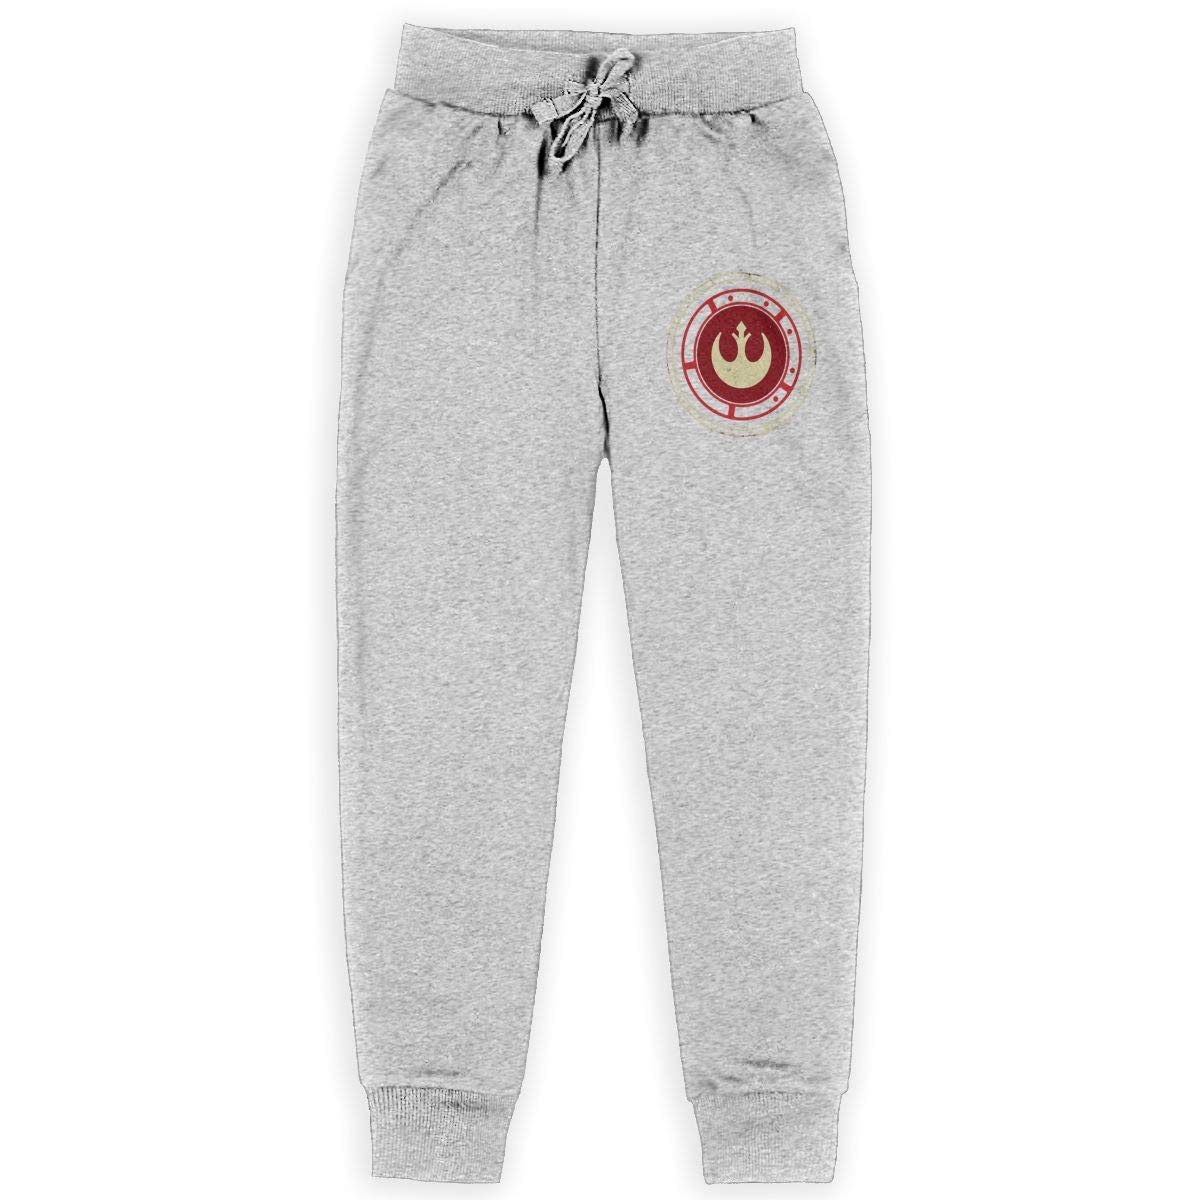 Kim Mittelstaedt Rebel Force Boys Big Active Basic Casual Pants Sweatpants for Boys Gray